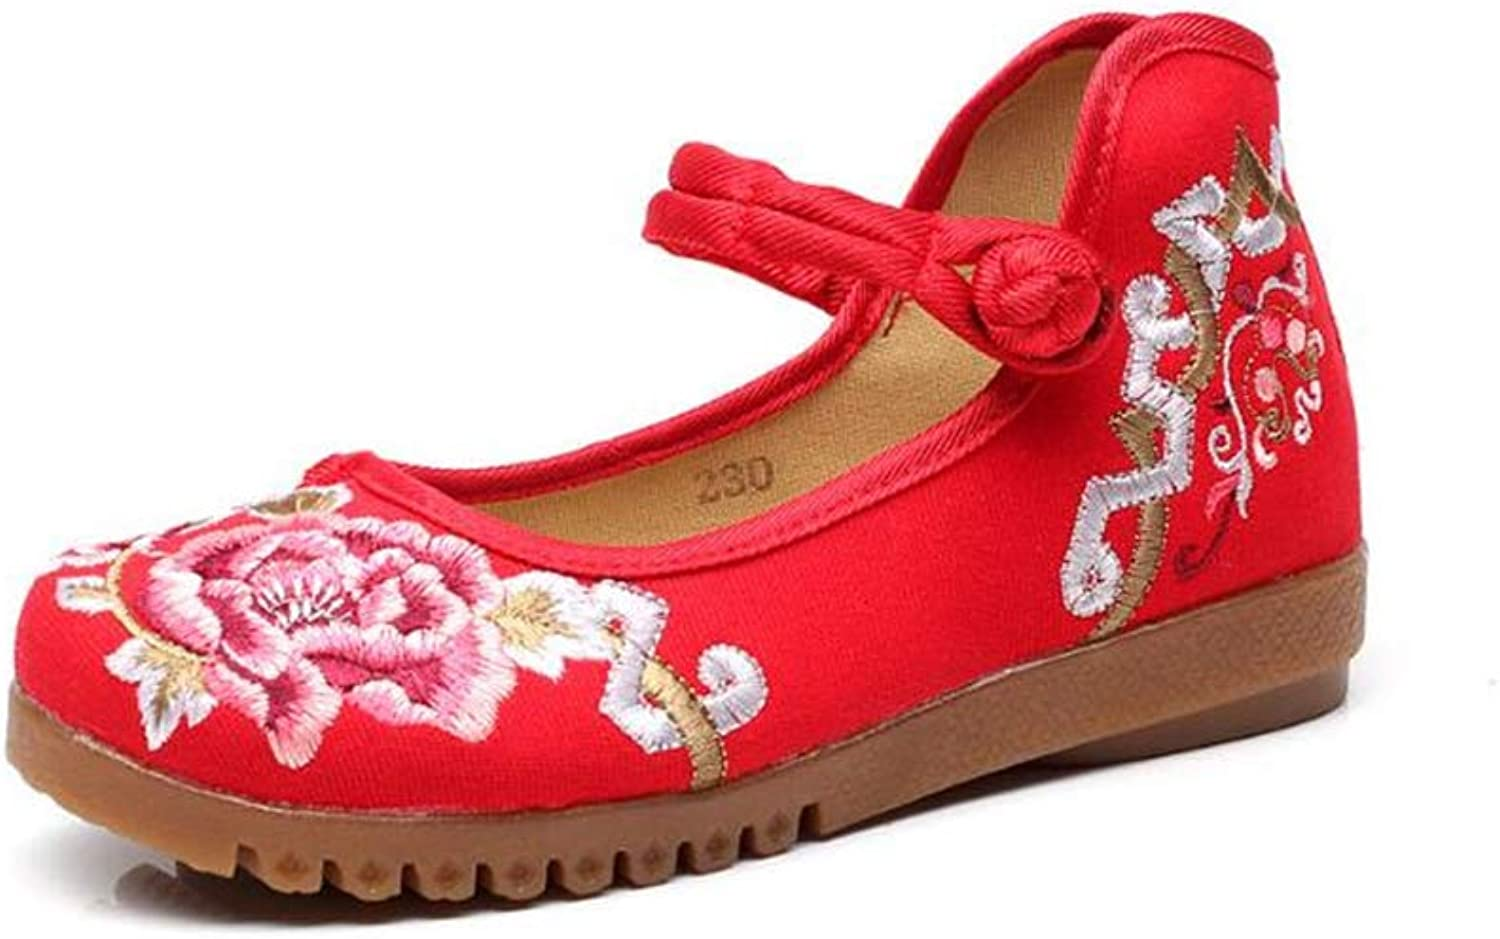 Gusha Women's Retro Embroidered Flat shoes Pumps Ballet shoes Loafers